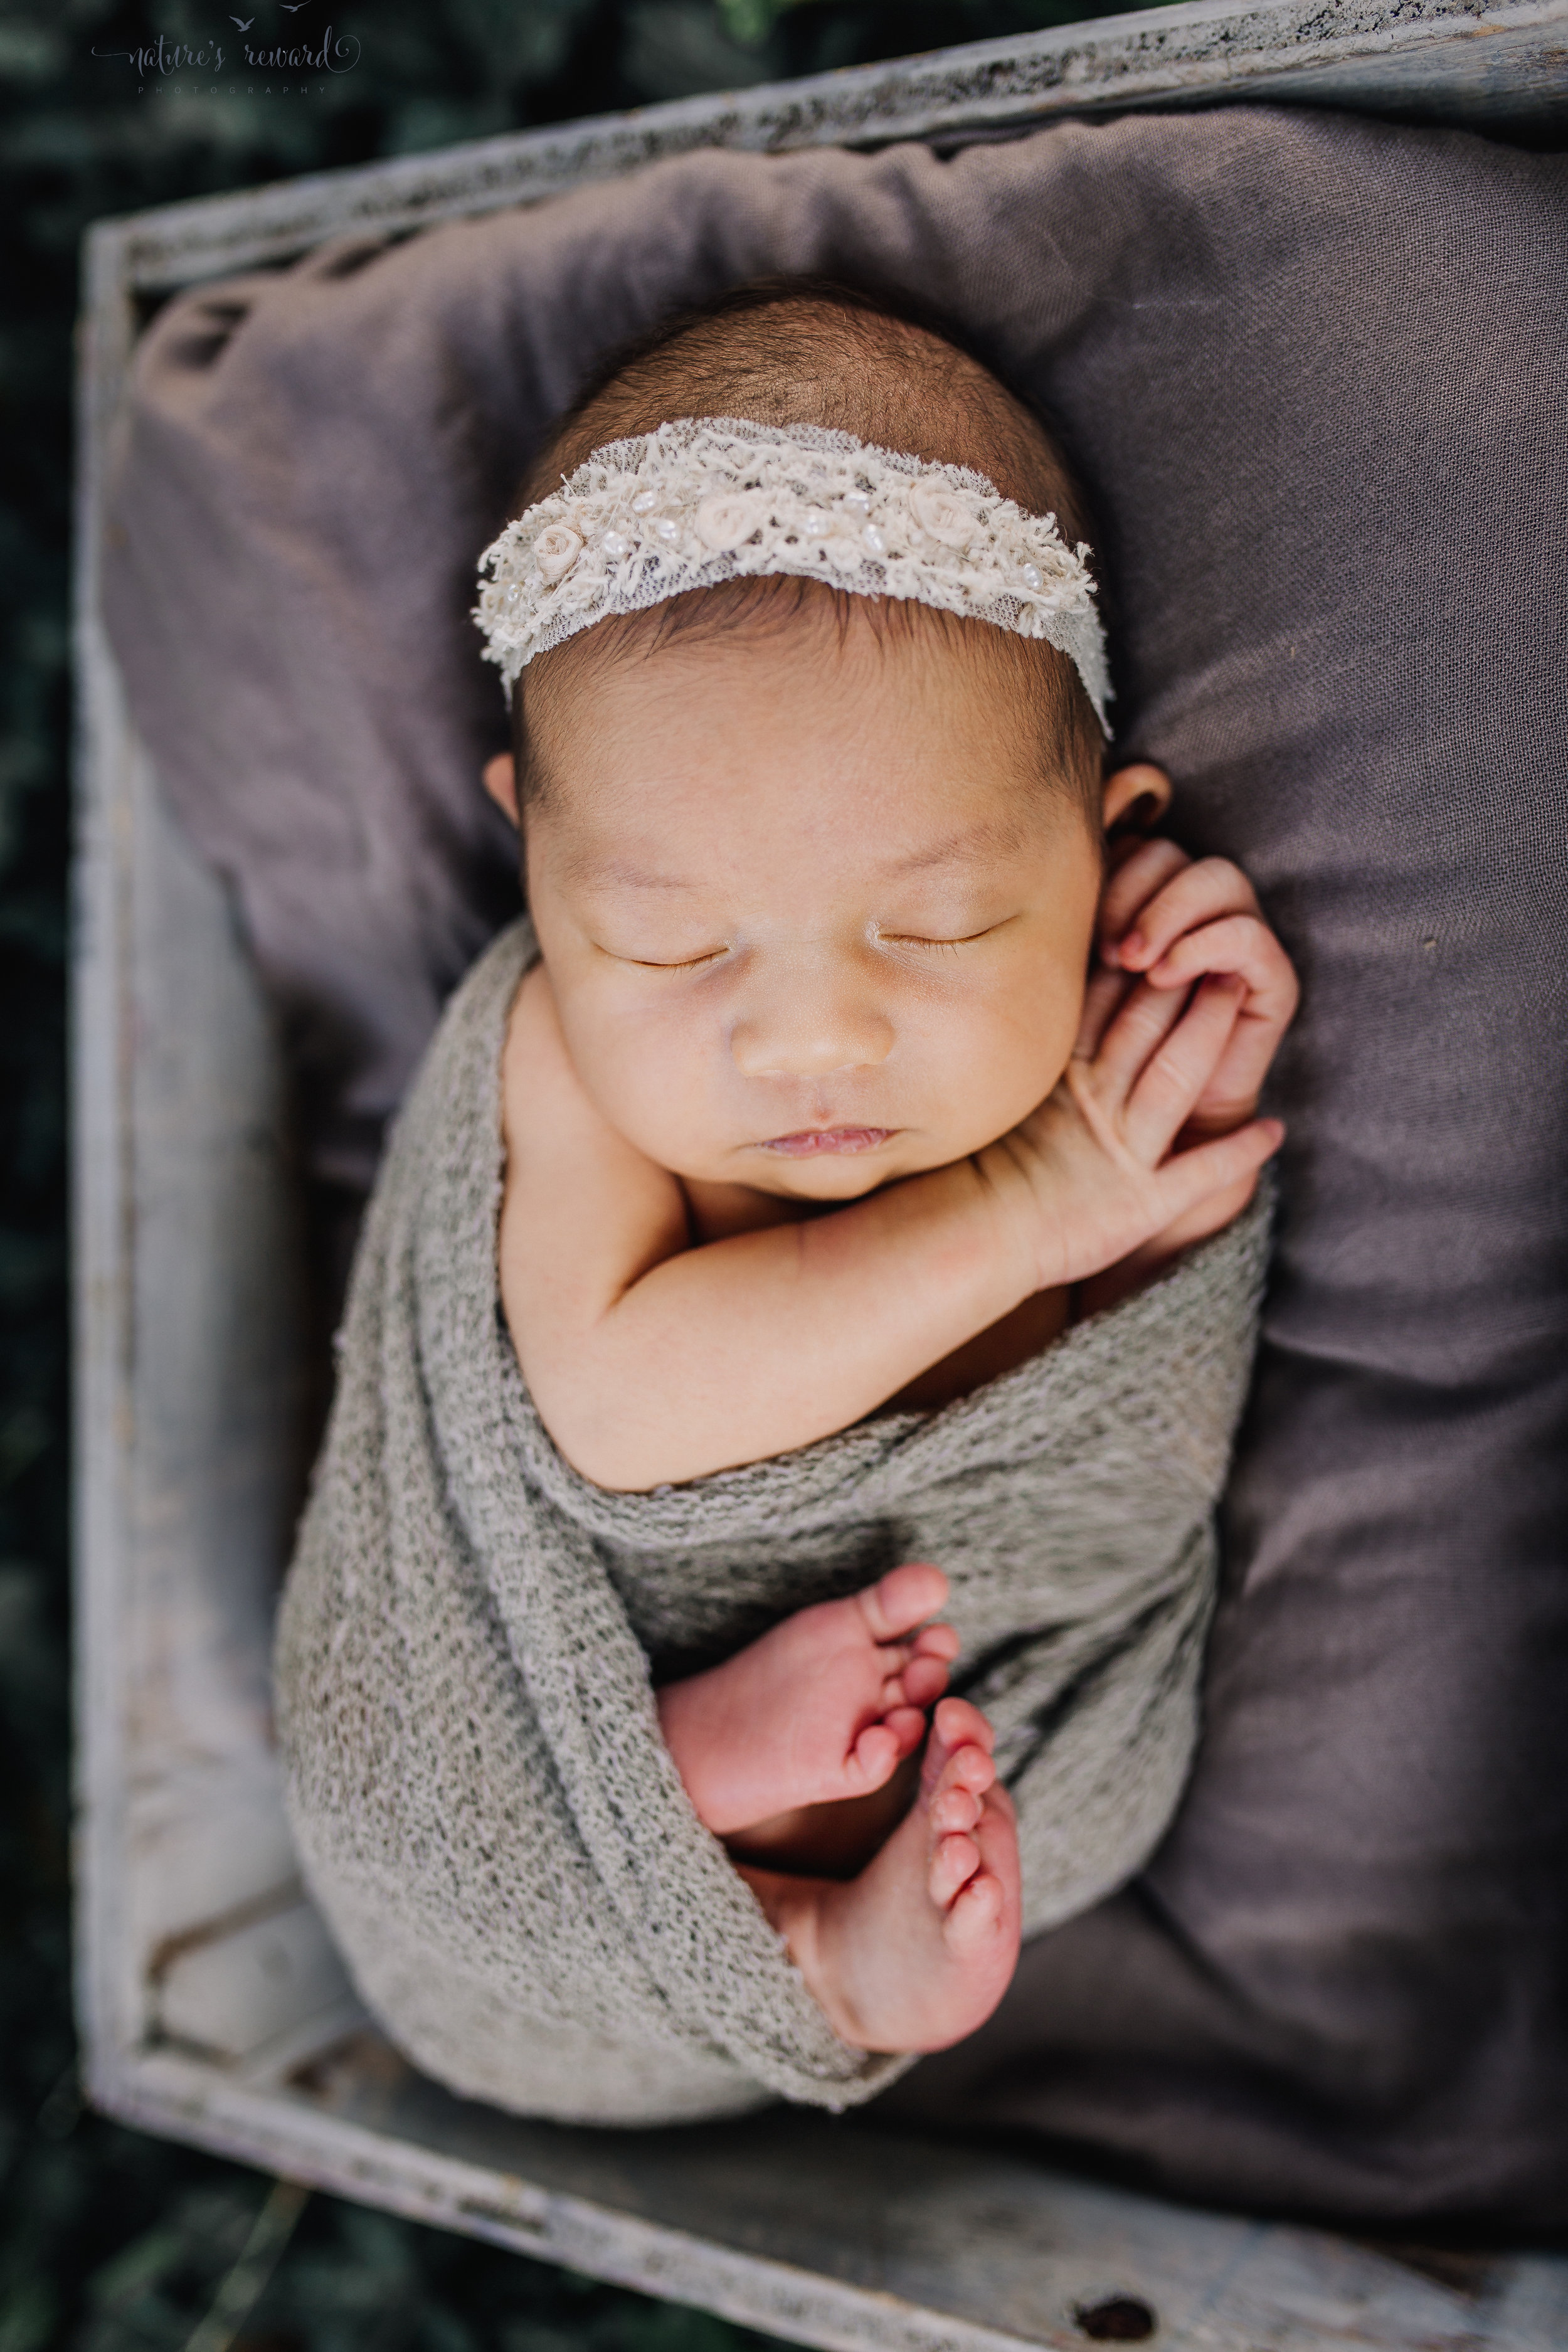 Lovely baby newborn girl swaddled in neutral wearing a white tie back and in a garden surrounded by lush greens in this portrait by Nature's Reward Photography